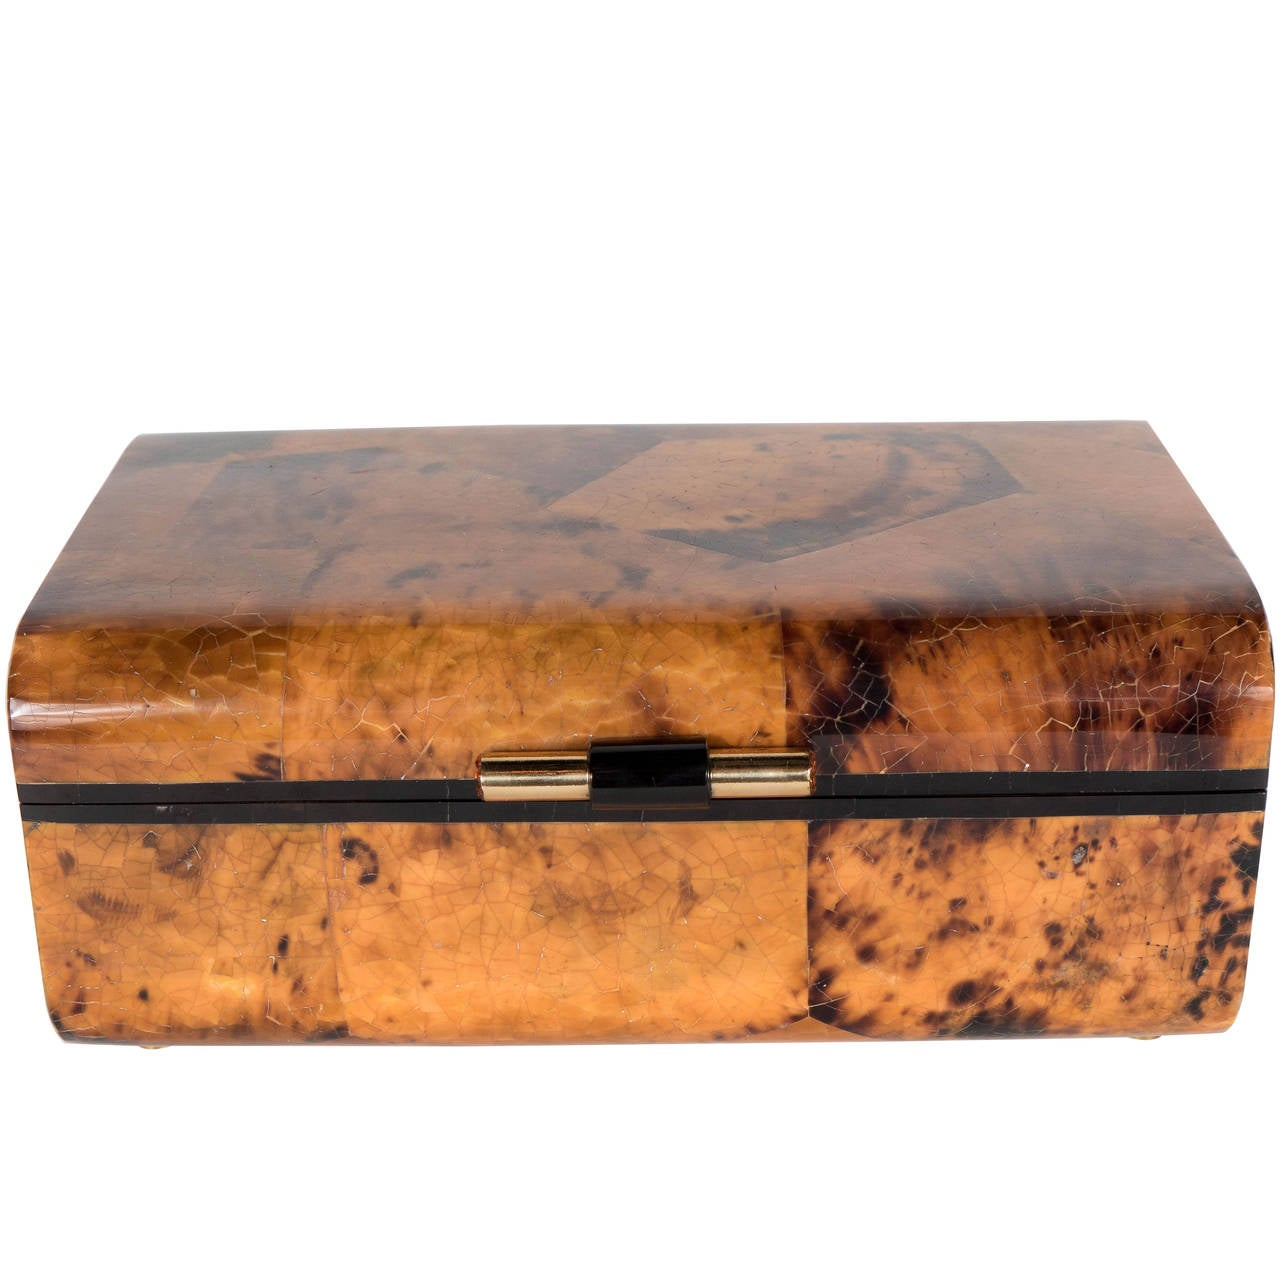 Penshell Box in Tortoise Motif with Brass Handle and Swarovski Crystal Accents